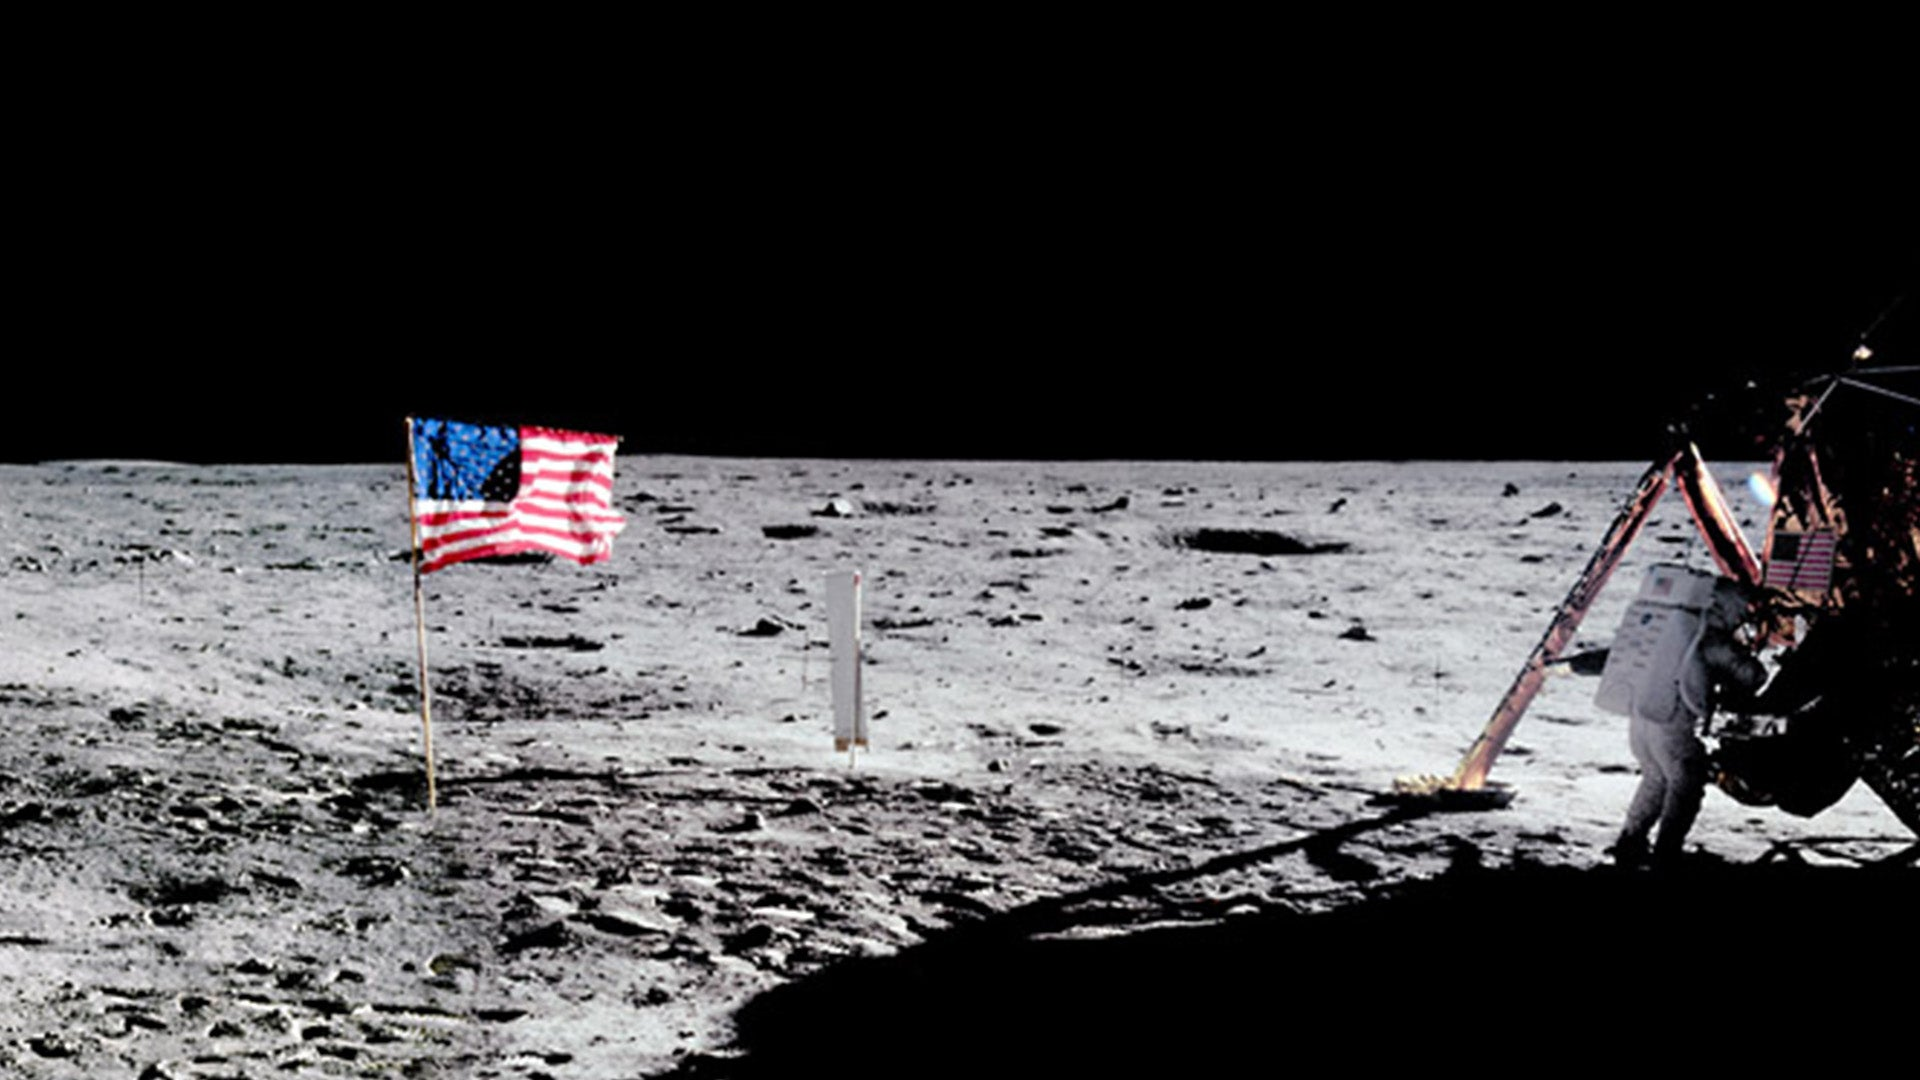 A photograph of the US flag on the surface of the moon